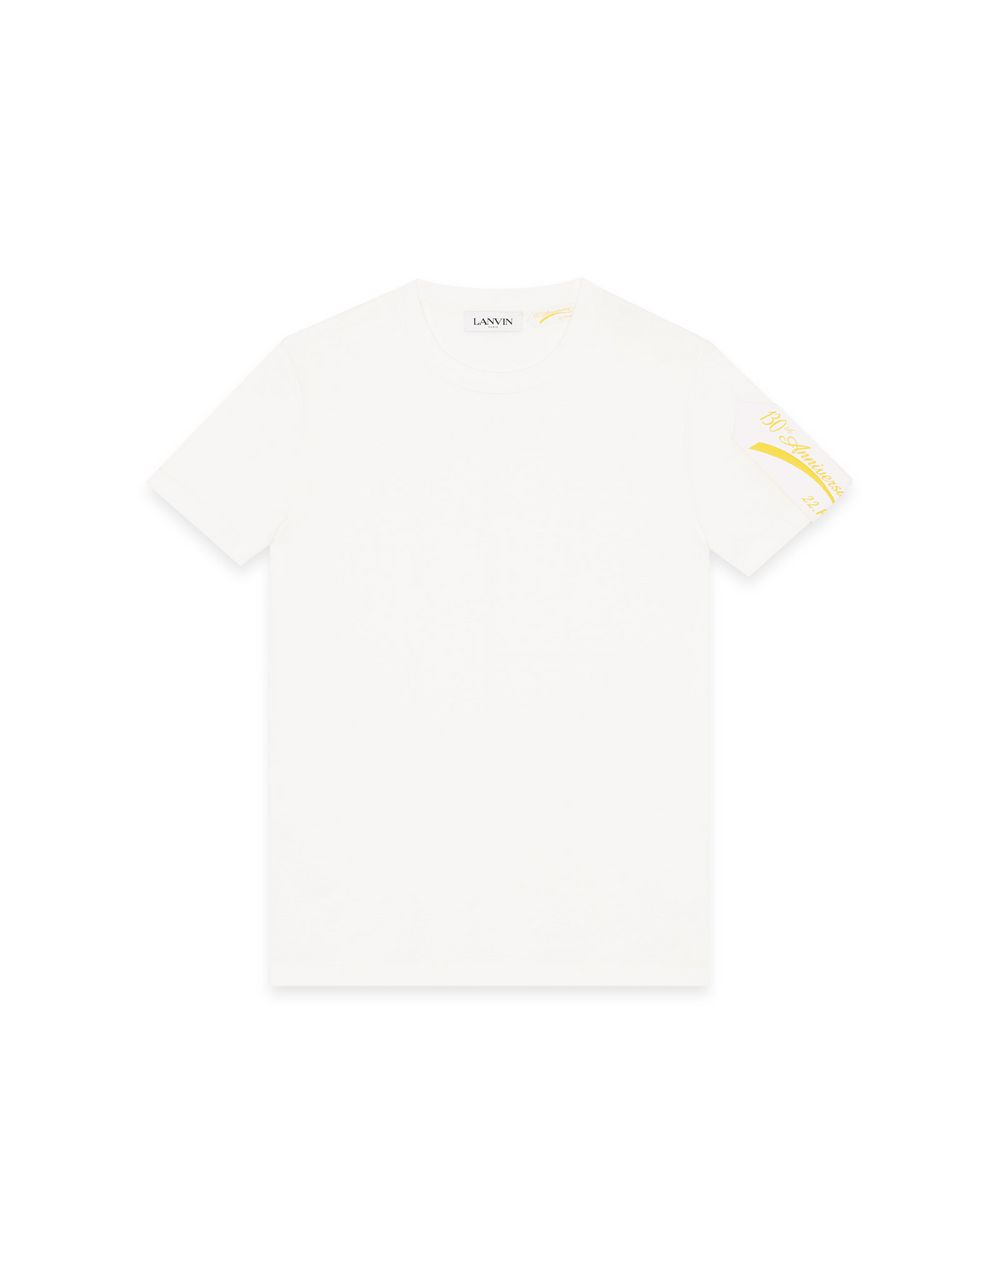 130 YEARS LANVIN LABEL PRINT T-SHIRT - Lanvin